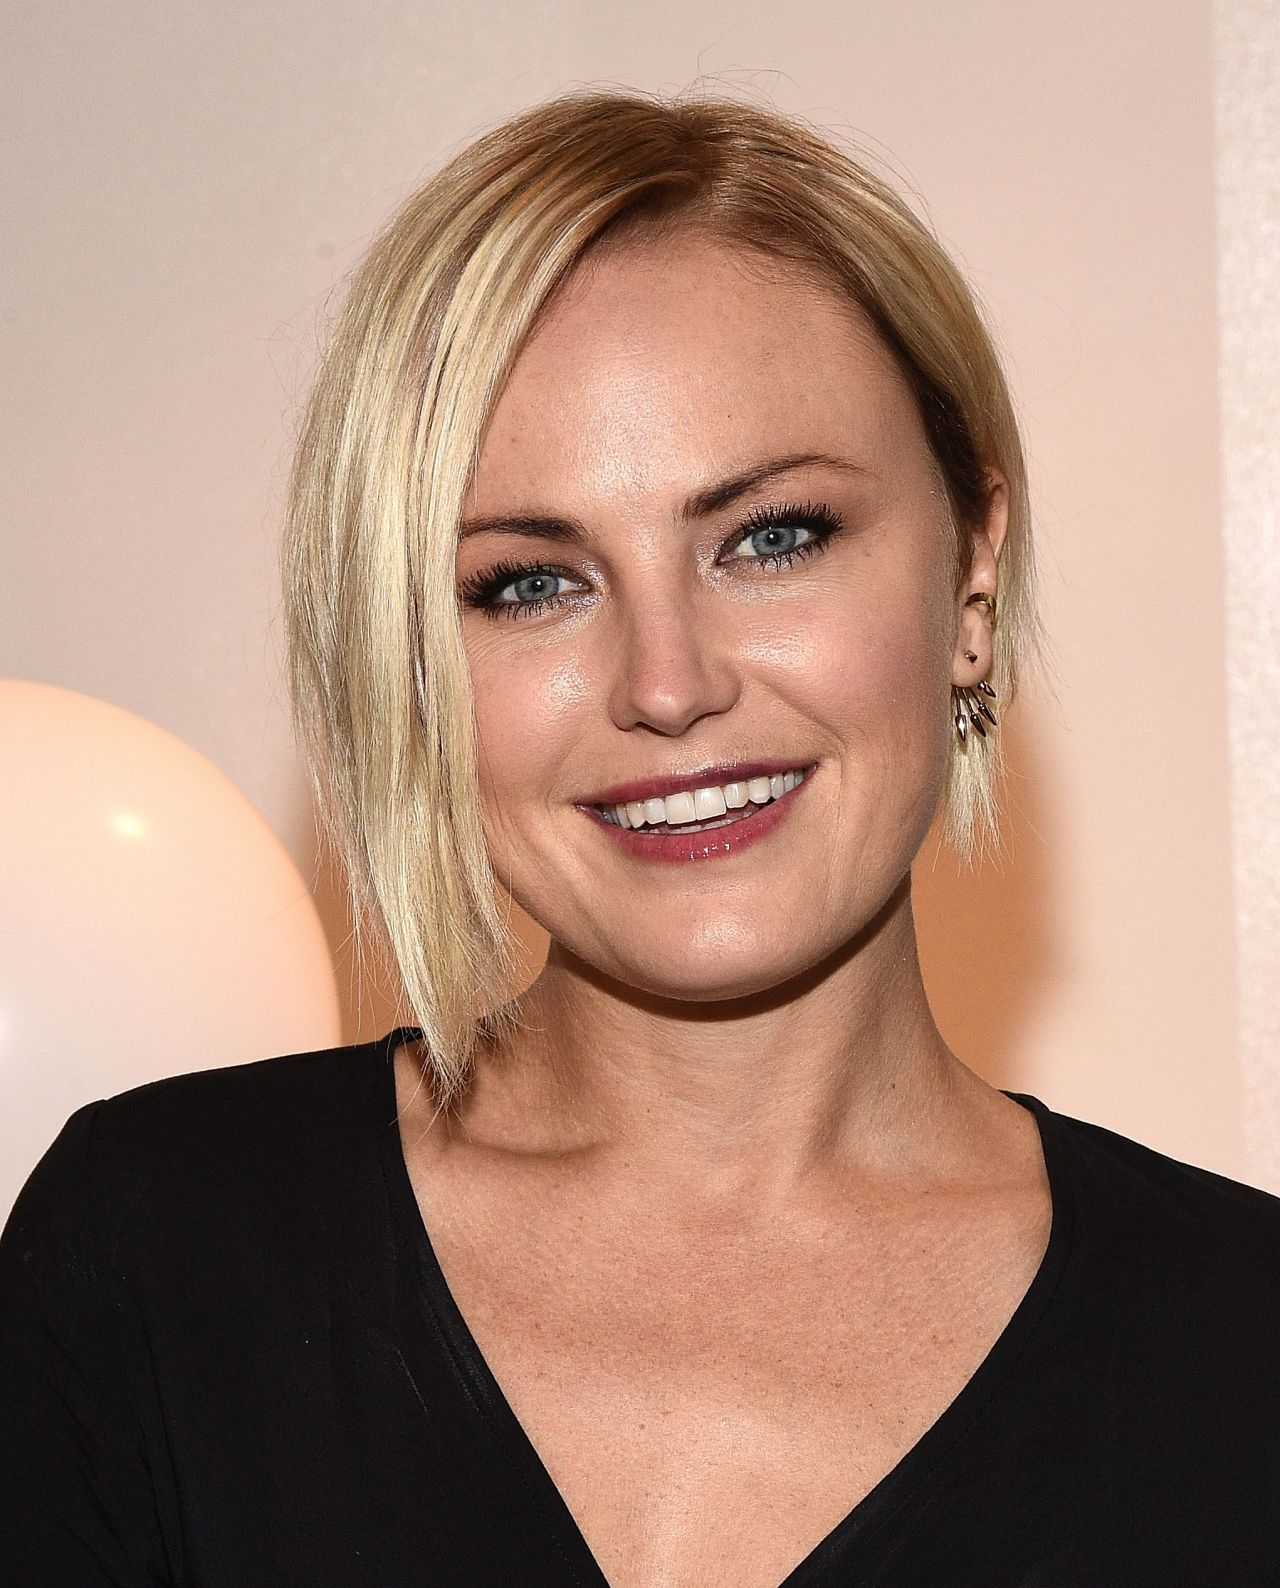 Malin Akerman Style - Splendid Holiday Book Drive Kick-Off in Santa Monica - Dec. 2014